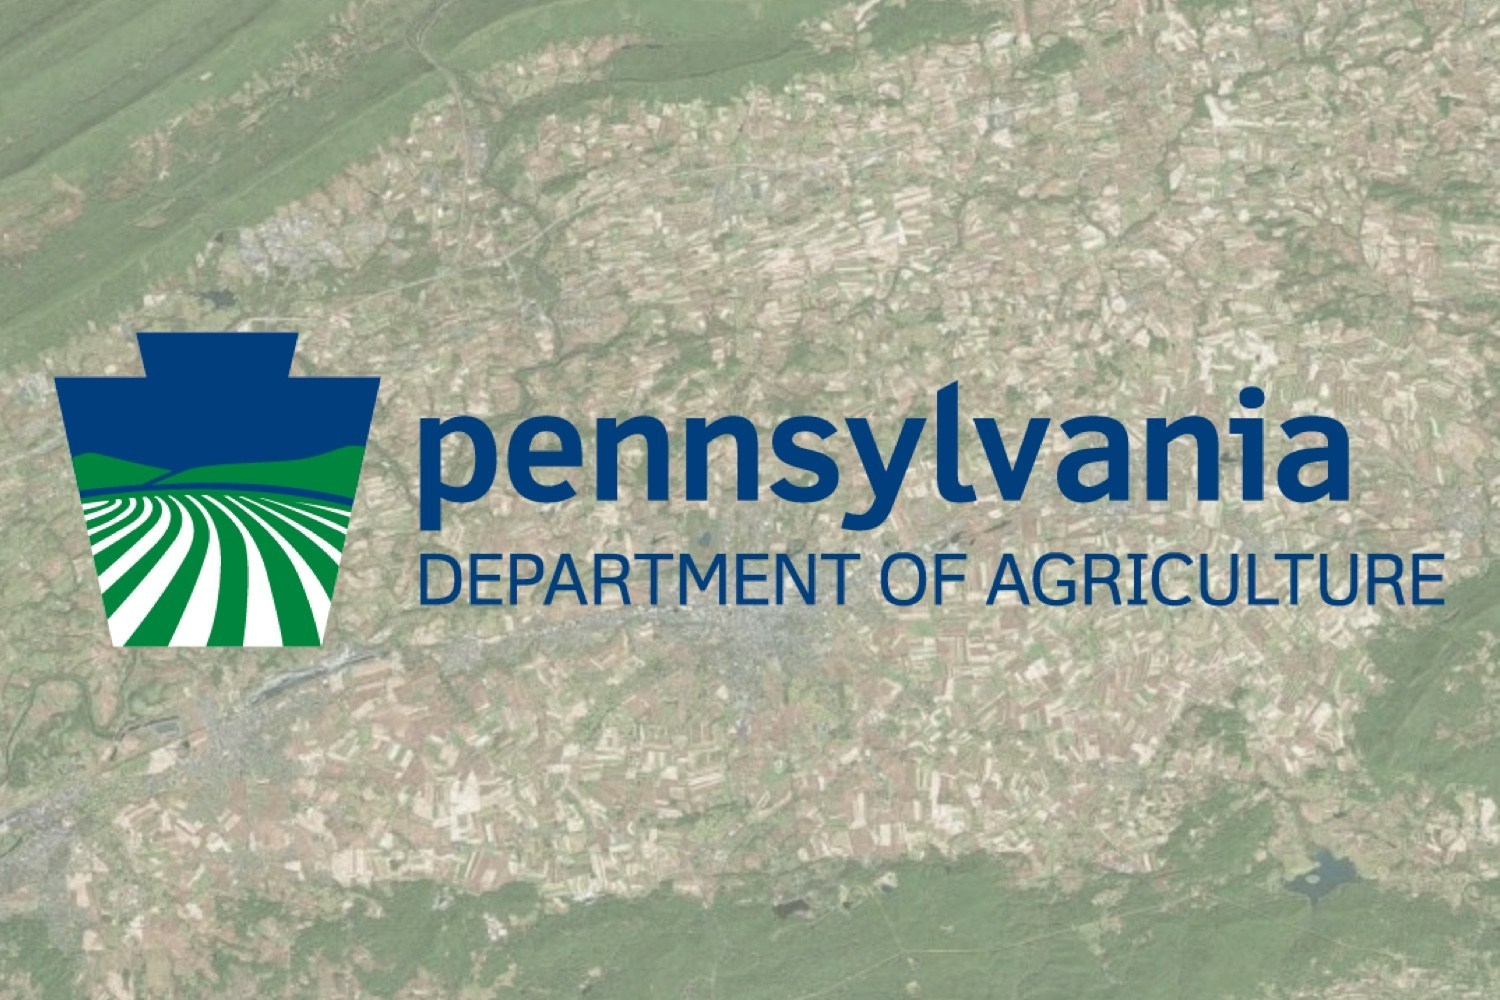 The latest food safety violations in Lebanon County